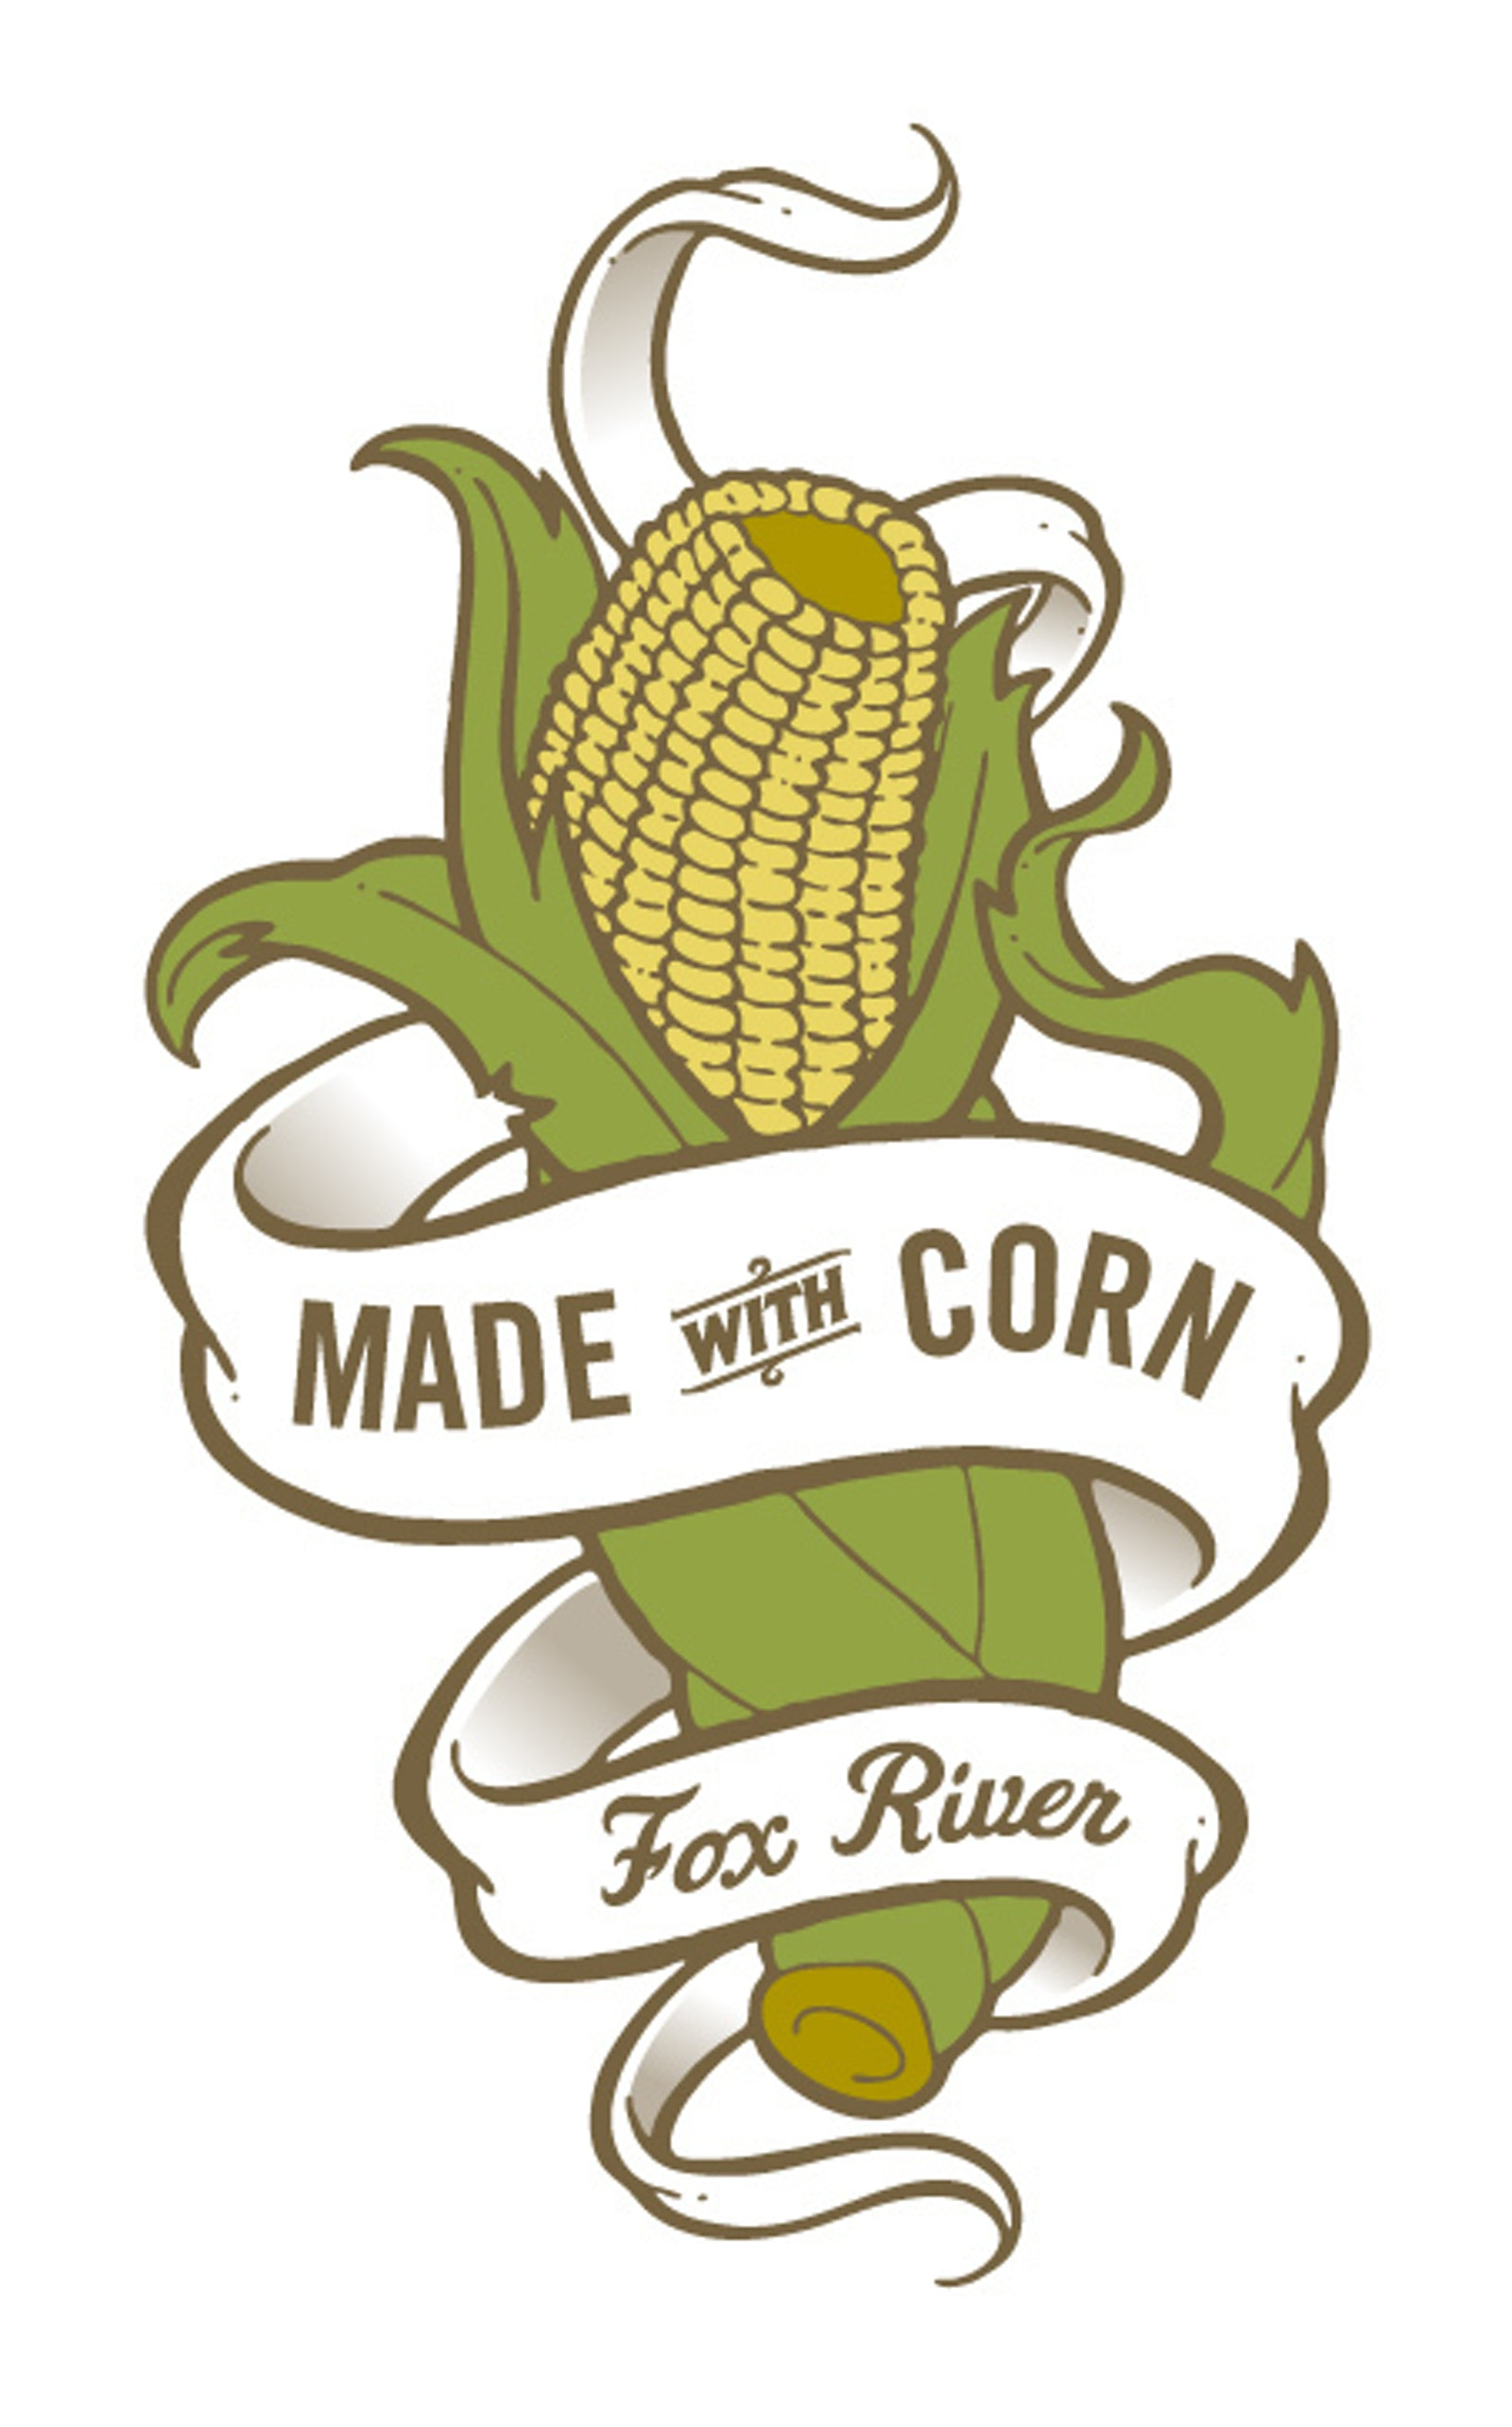 Fox River Corn logo A